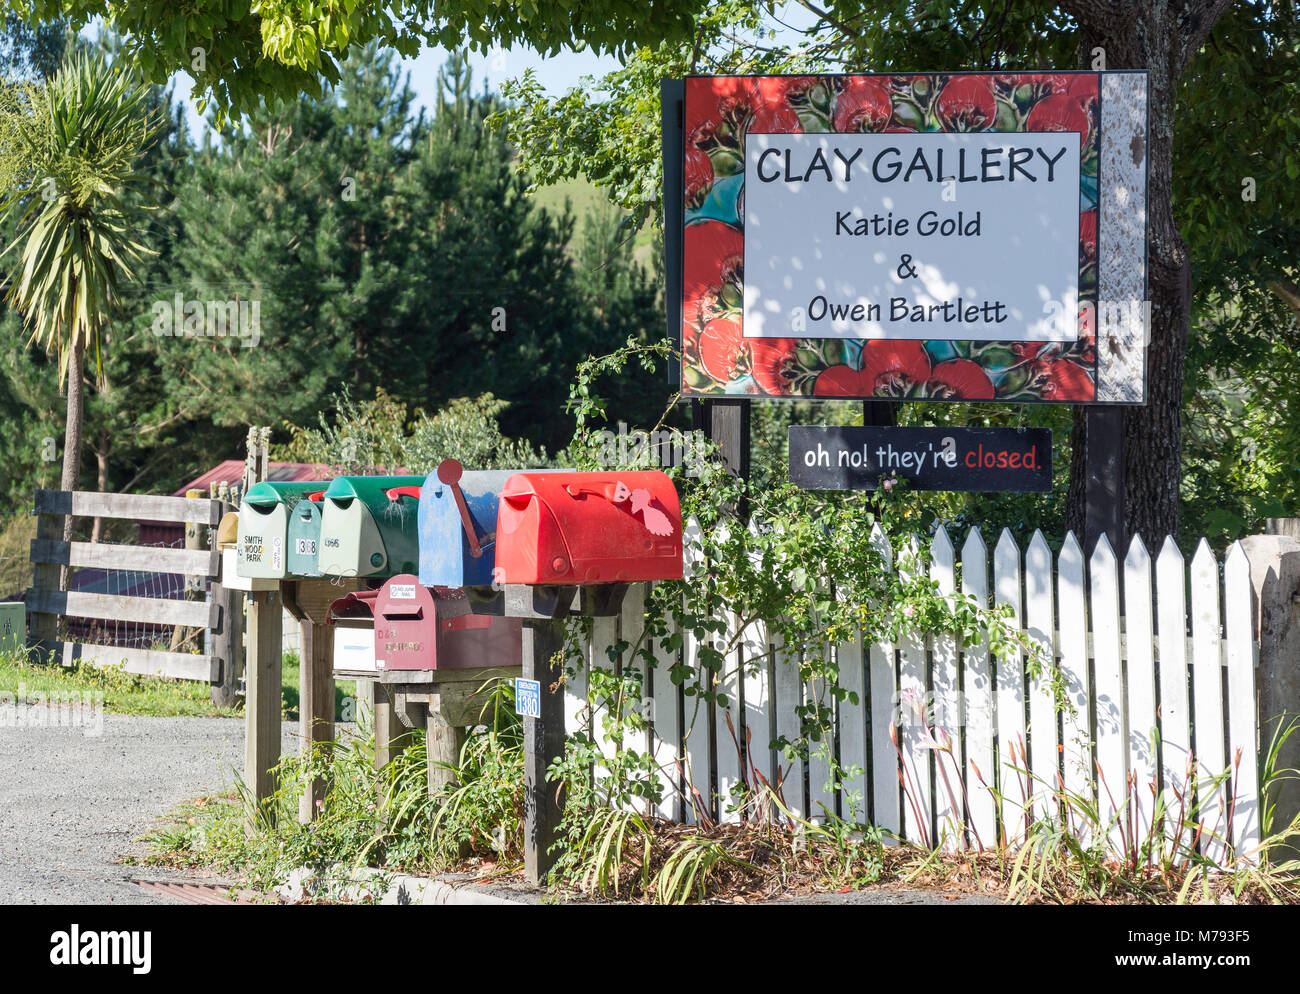 Clay Gallery sign and letter boxes, Moutere Highway, Upper Moutere, Tasman District, New Zealand - Stock Image